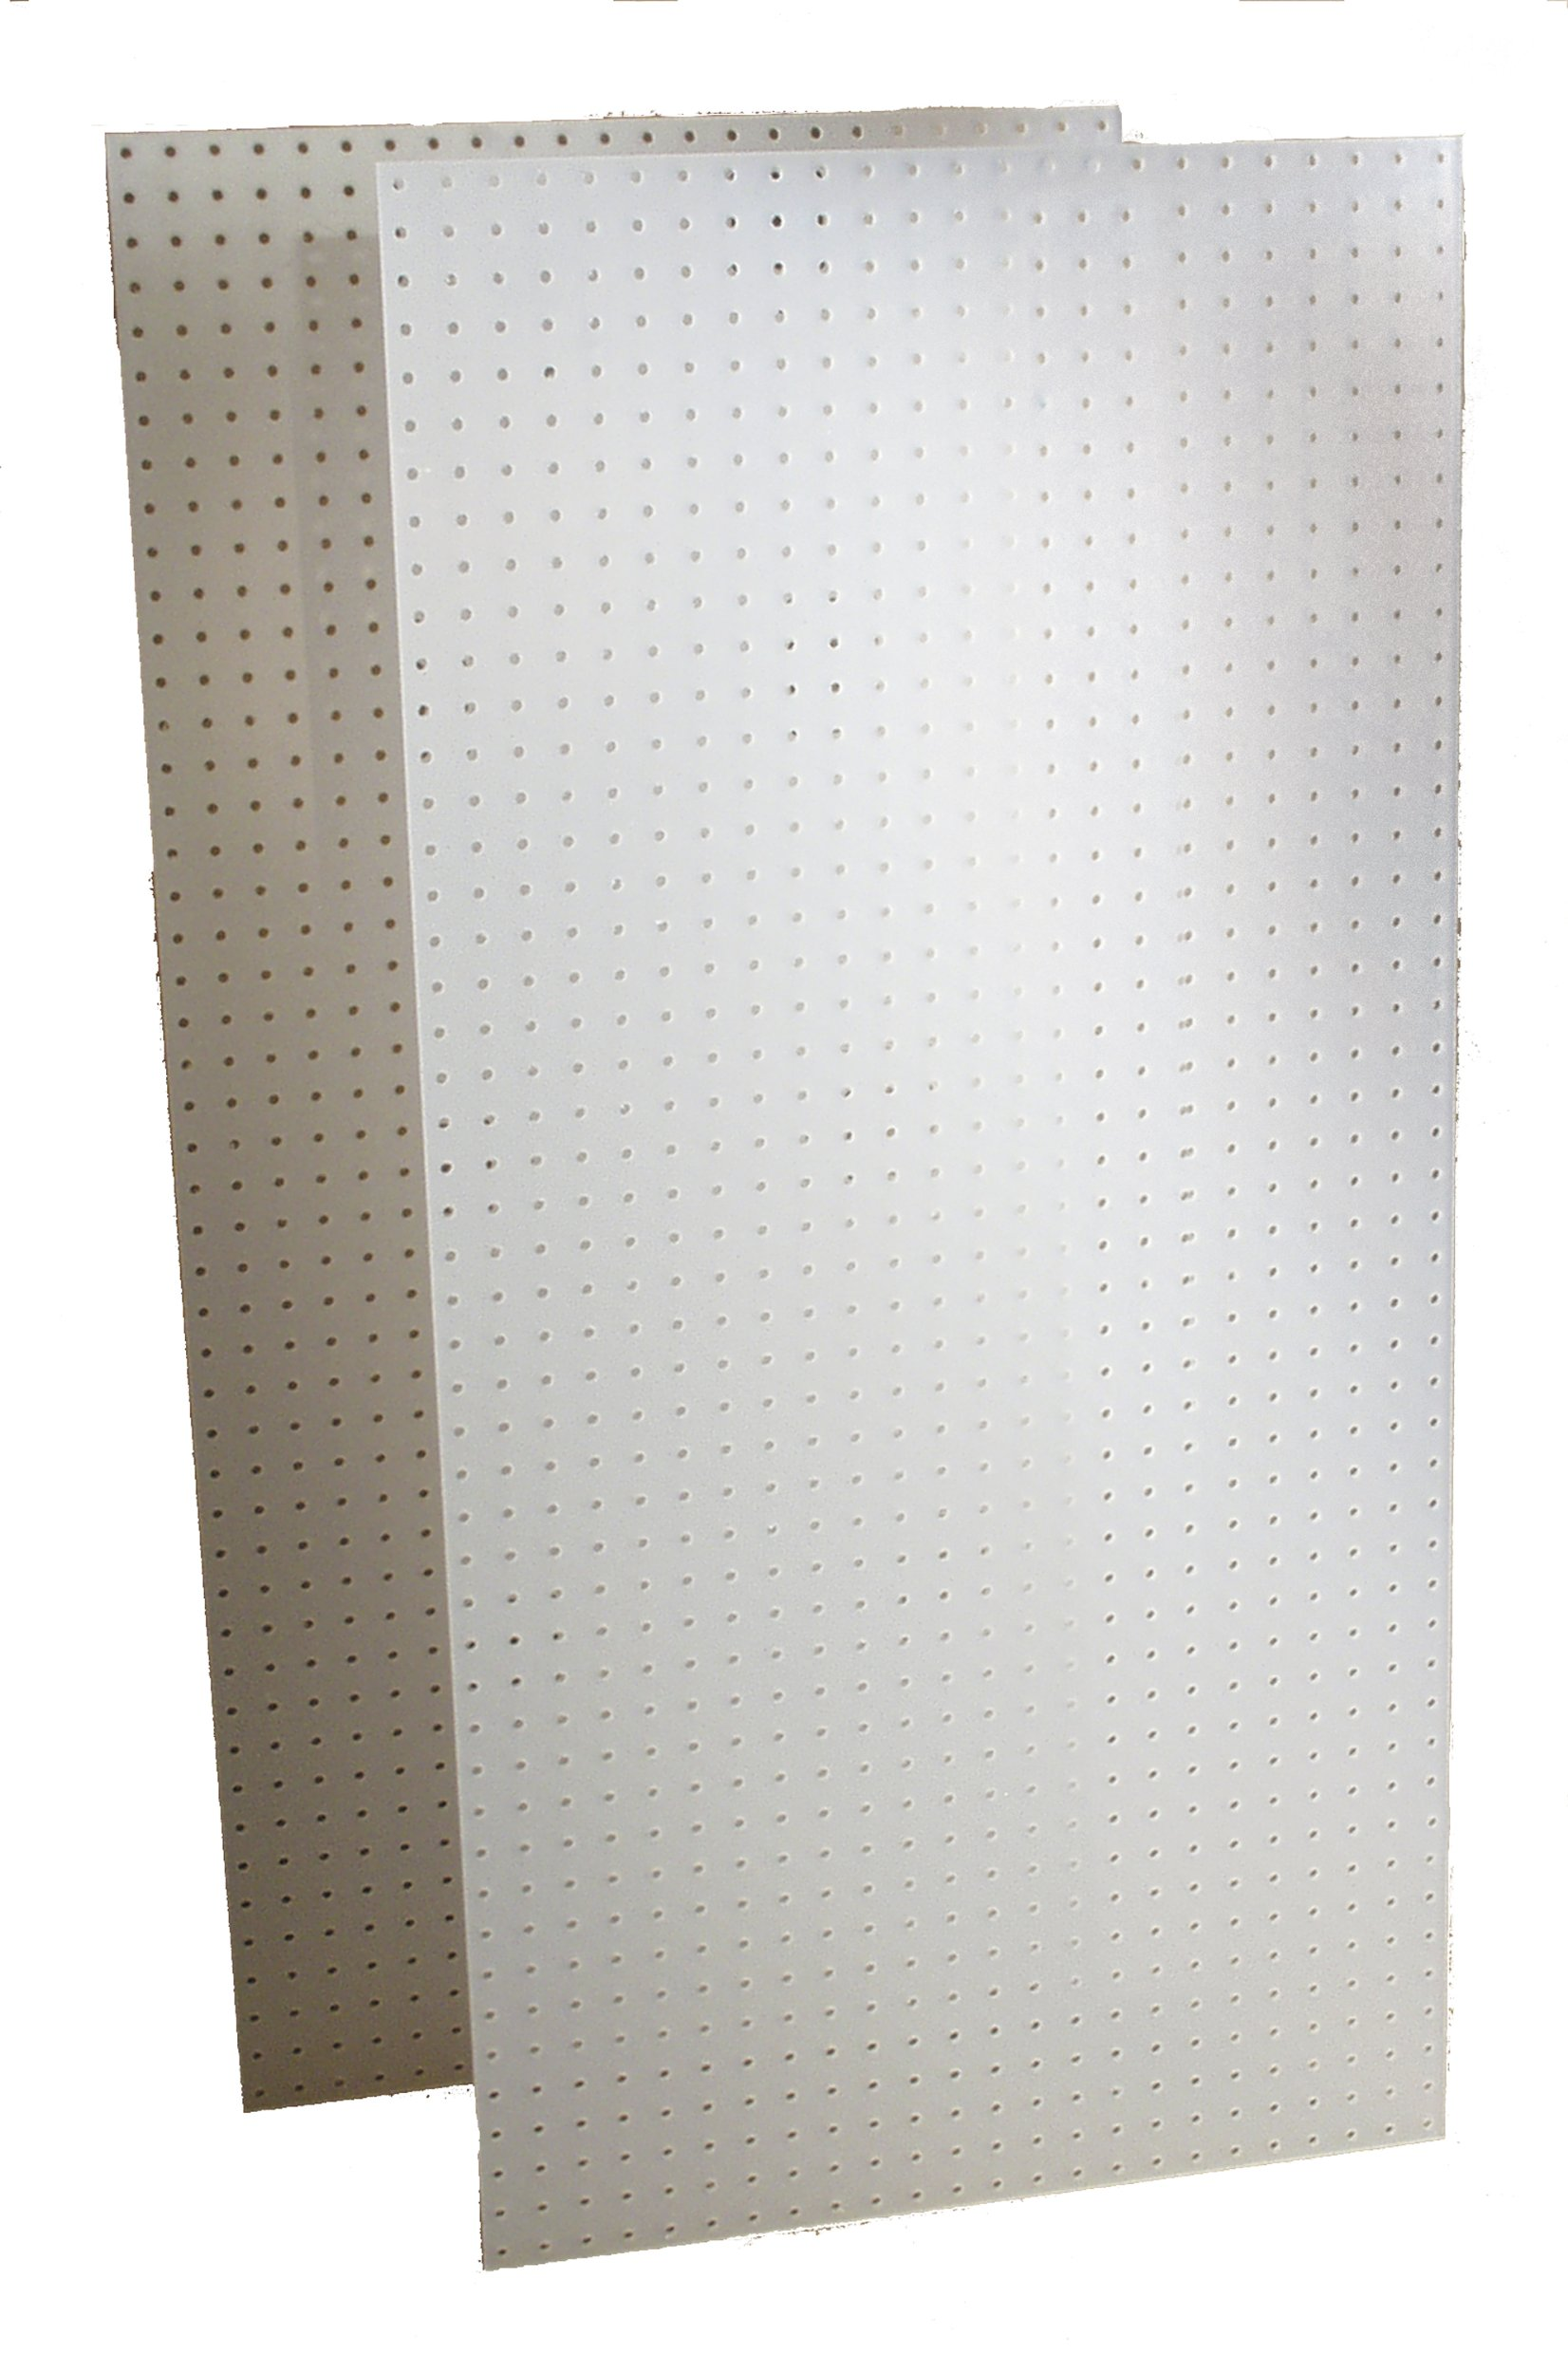 Triton Products DB-2 Two DuraBoard White Polypropylene Pegboards 24-Inch W by 48-Inch H by 1/4-Inch D with 9/32-Inch Hole Size and 1-Inch O,C, Hole Spacing